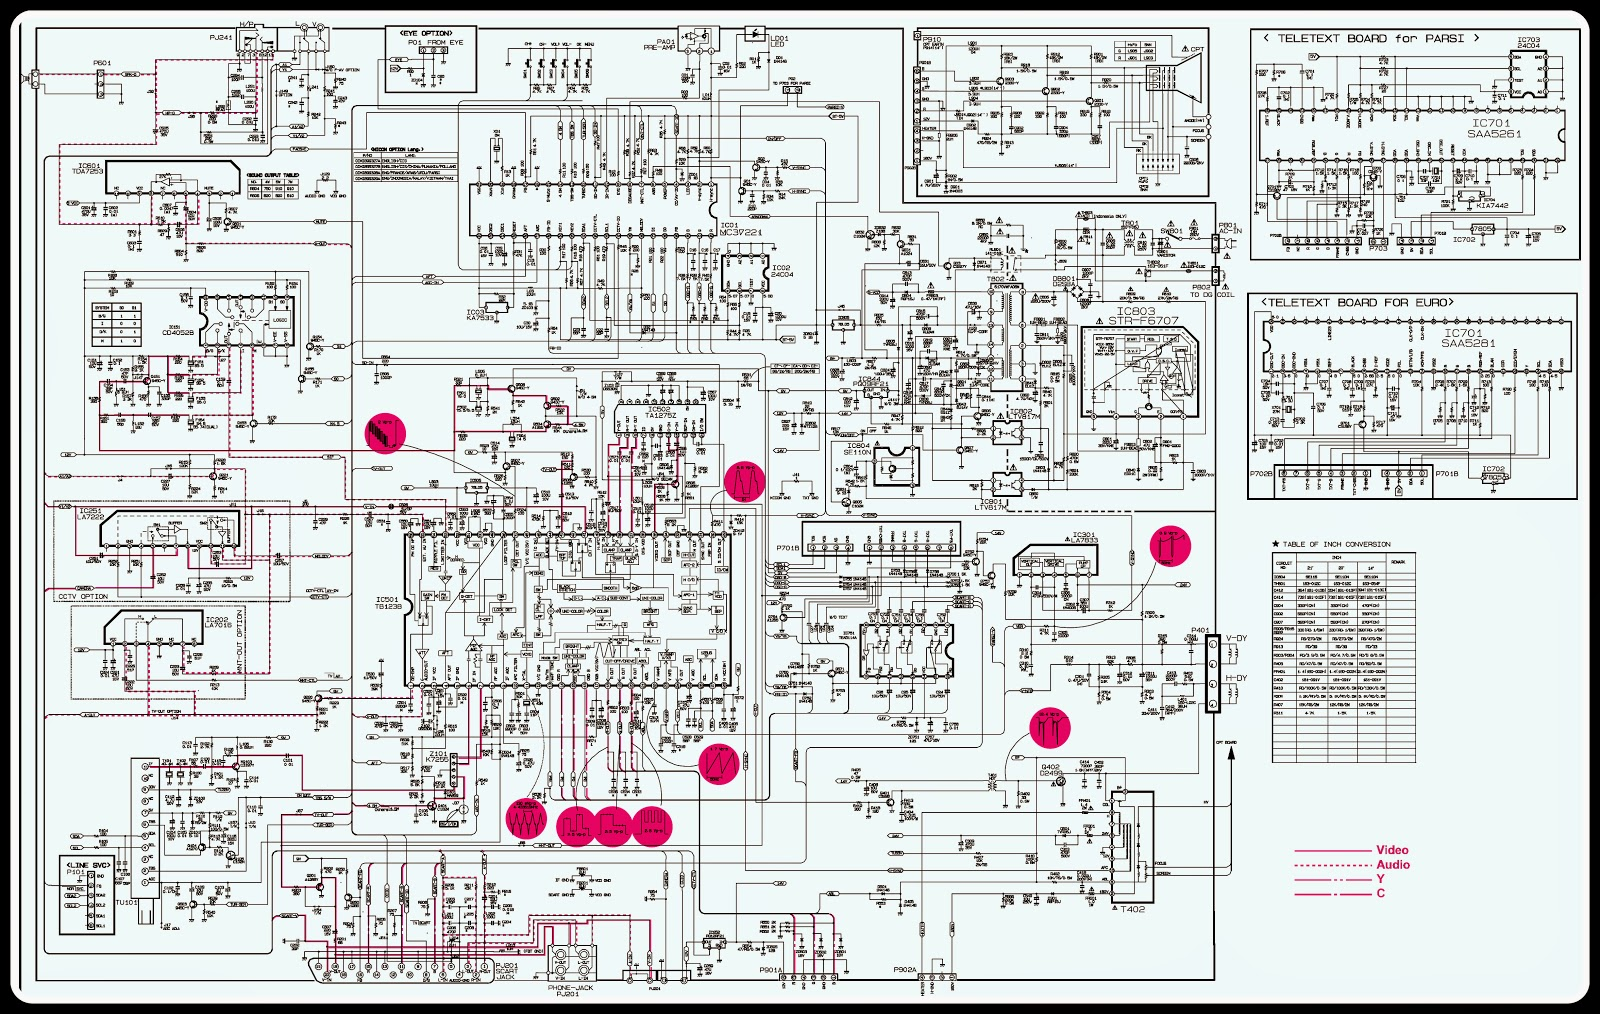 medium resolution of lg tv diagram wiring diagrams fujitsu tv diagram flat tv lg diagrams